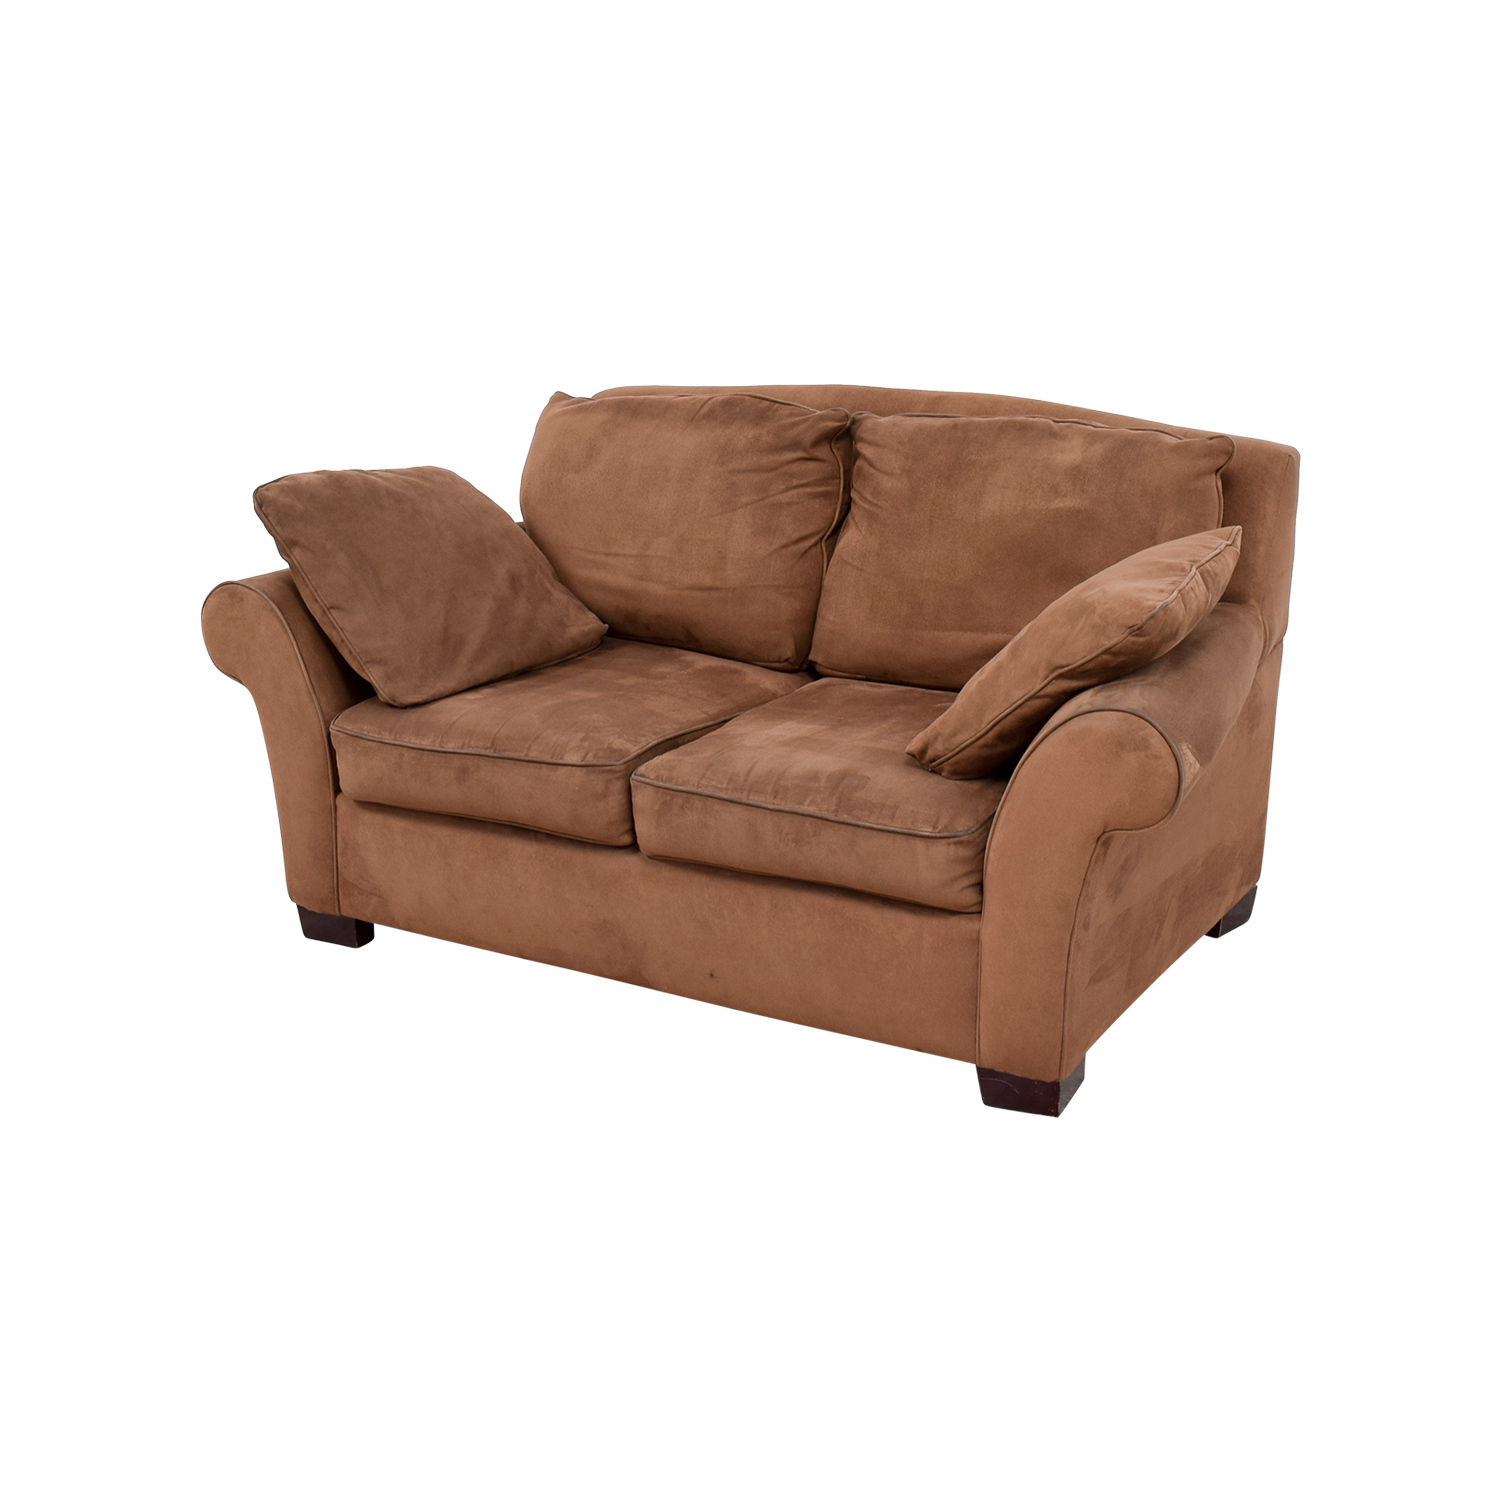 90 off brown curved arm loveseat sofas for Furniture 90 off